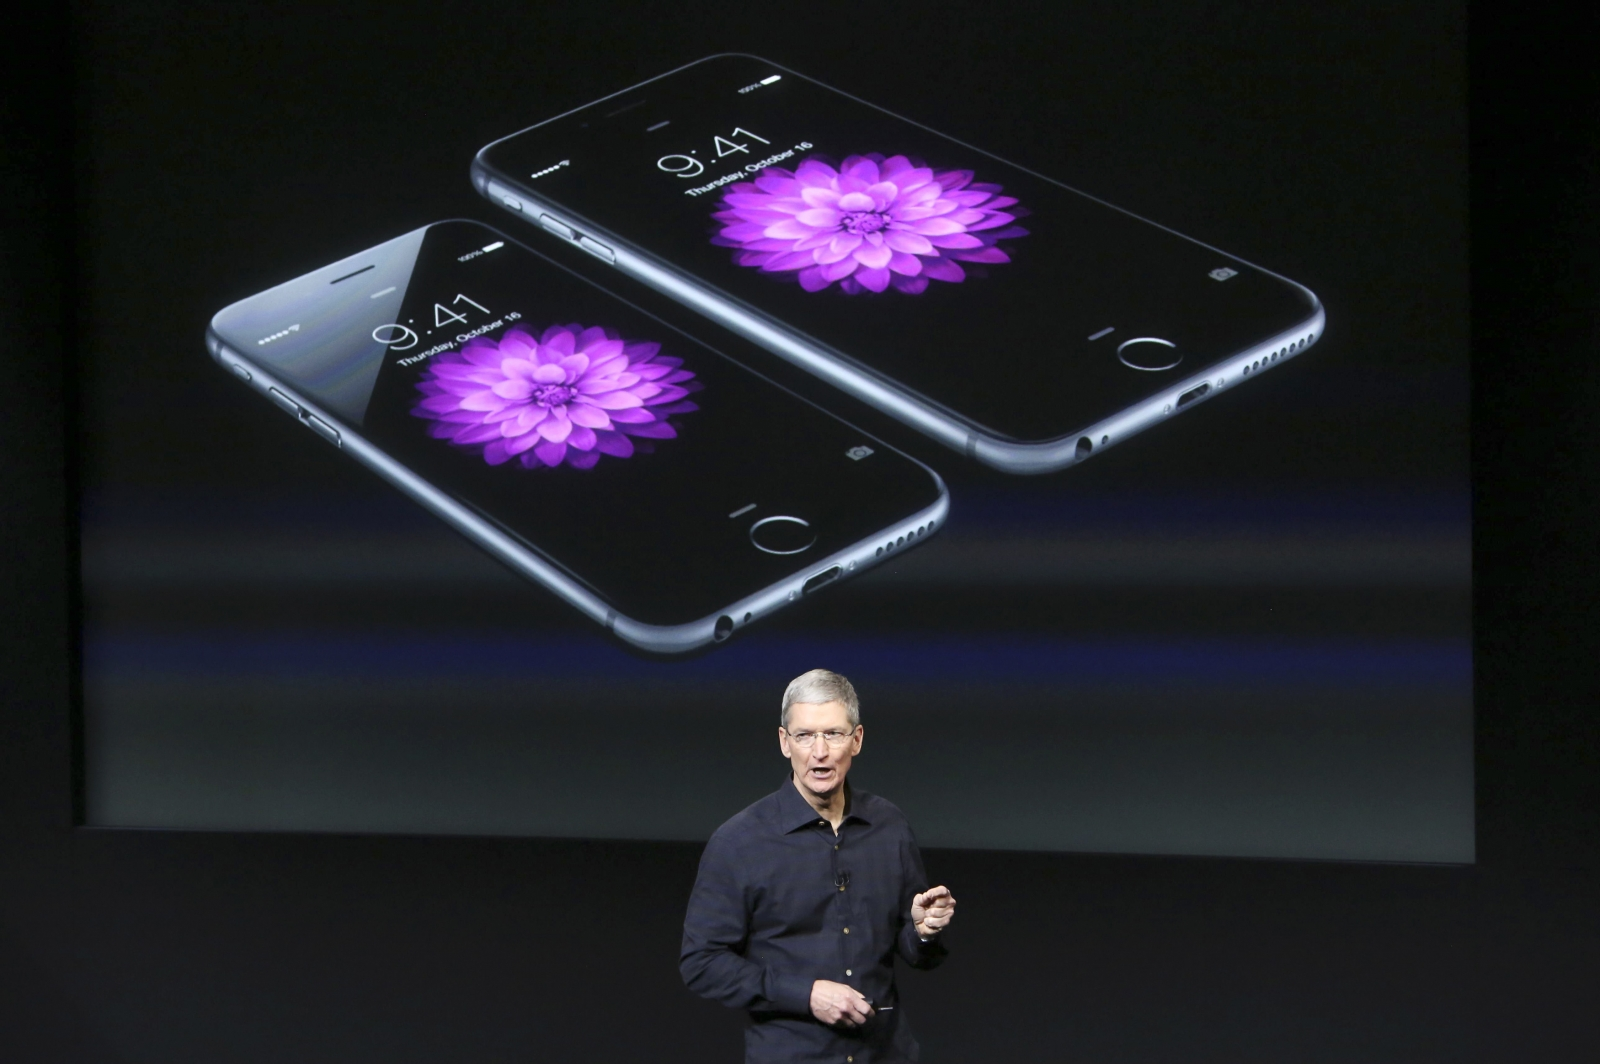 Apple CEO Tim Cook stands in front of a screen displaying the IPhone 6 during a presentation at Apple headquarters in Cupertino, California October 16, 2014